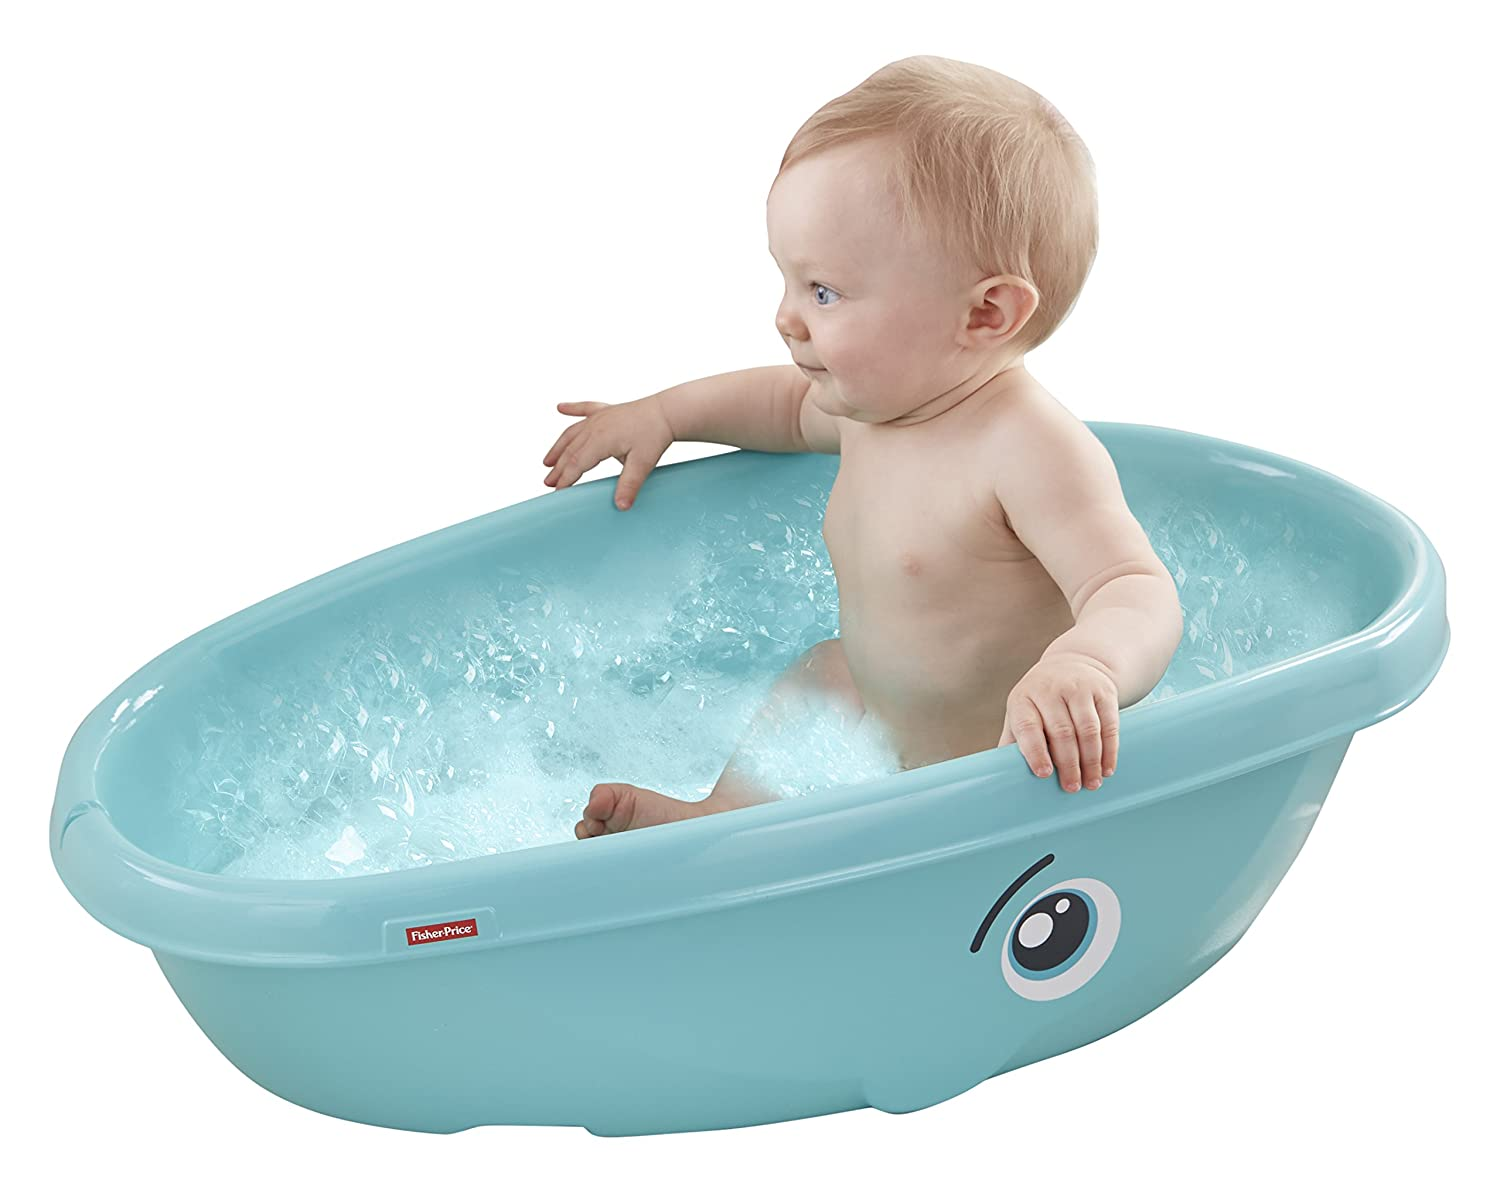 whale baby tub bathtub sit up fisher price small infant seat padded back new ebay. Black Bedroom Furniture Sets. Home Design Ideas